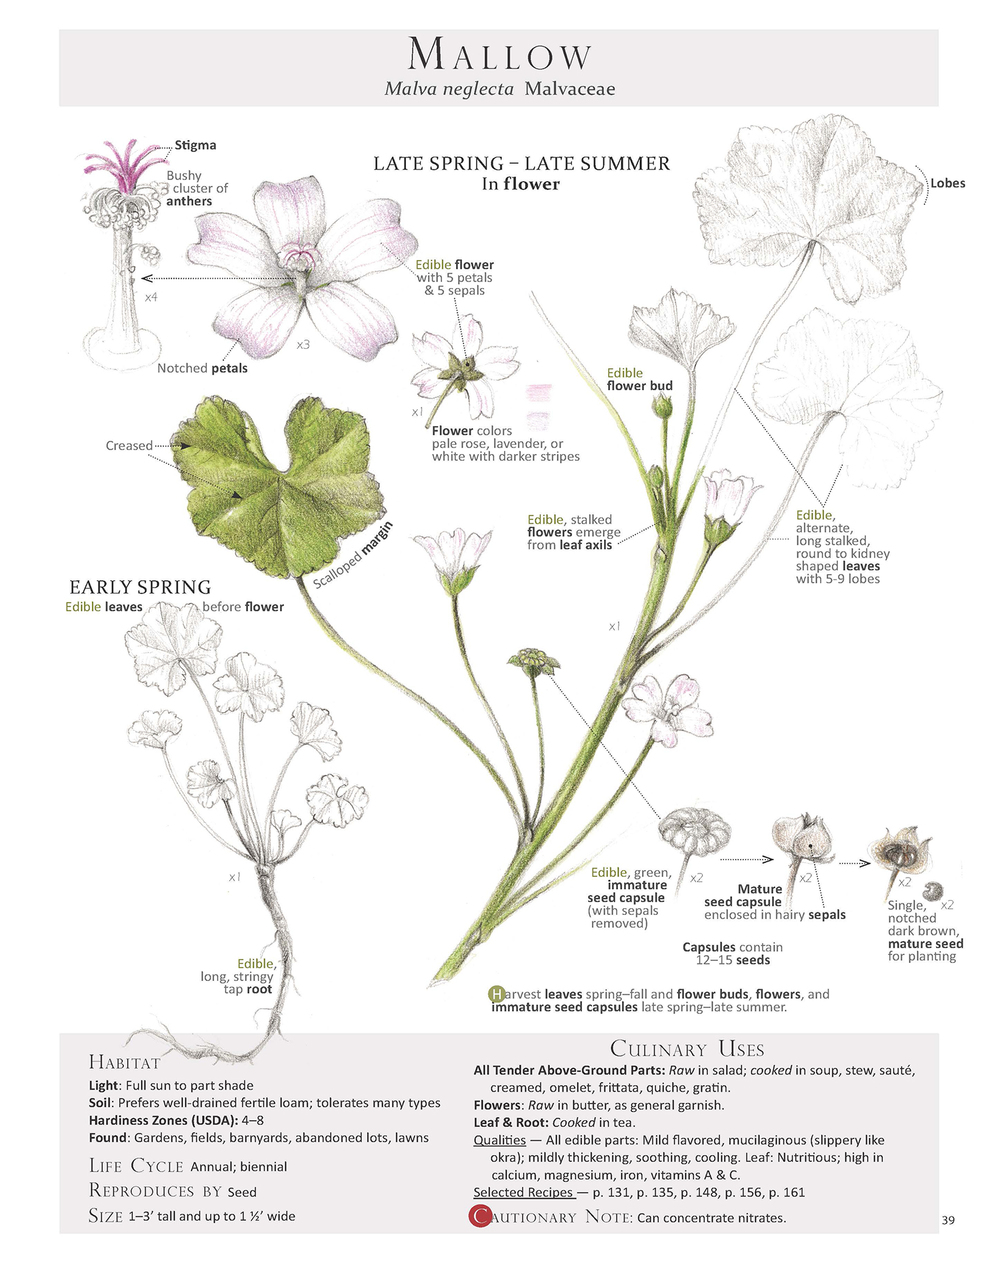 Common mallow illustration from Foraging & Feasting: A Field Guide and Wild Food Cookbook.